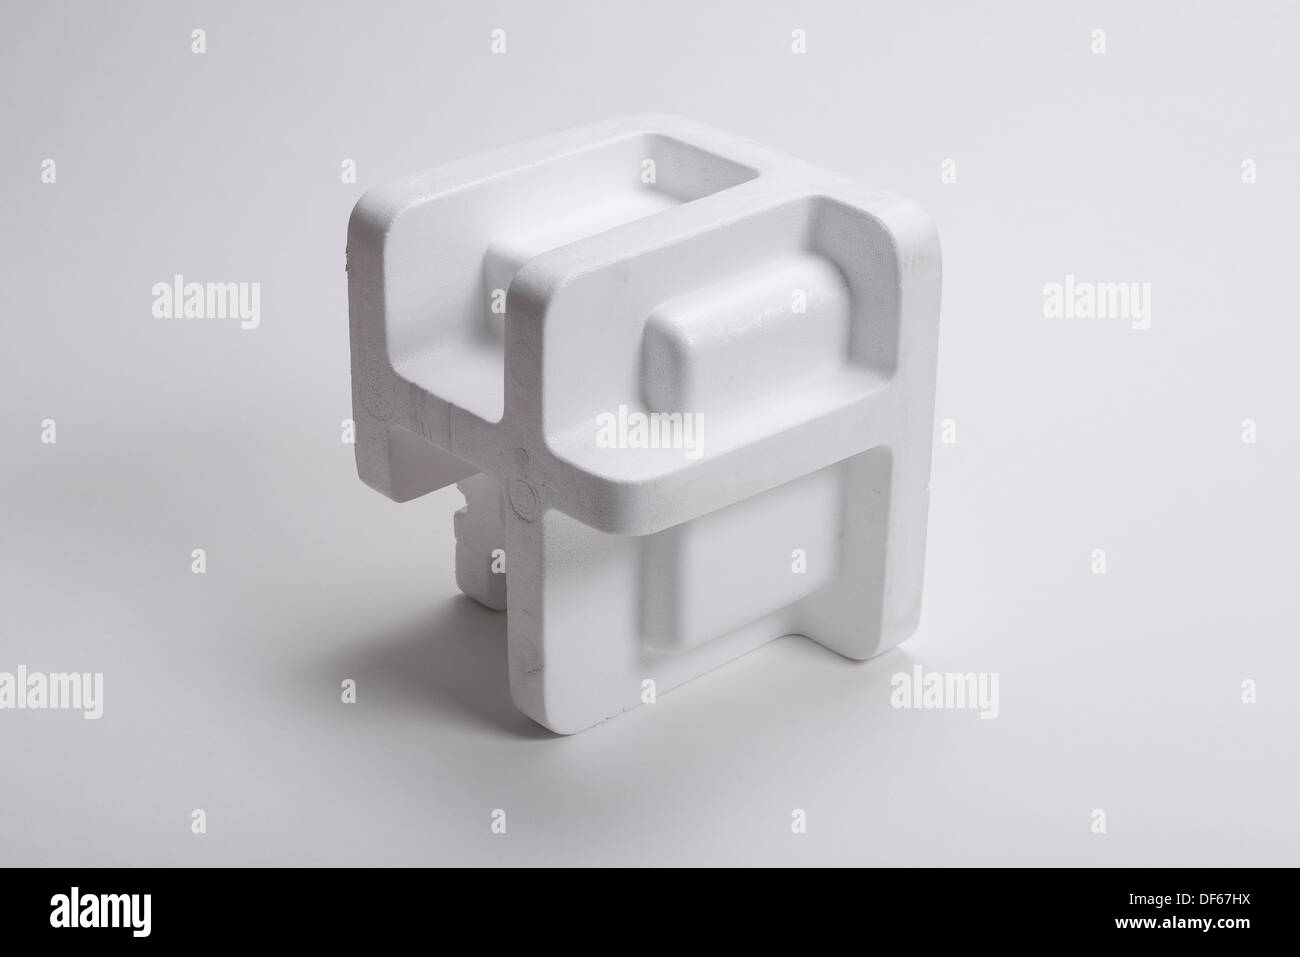 Piece of white polystyrene shaped as a piece of packaging material - Stock Image